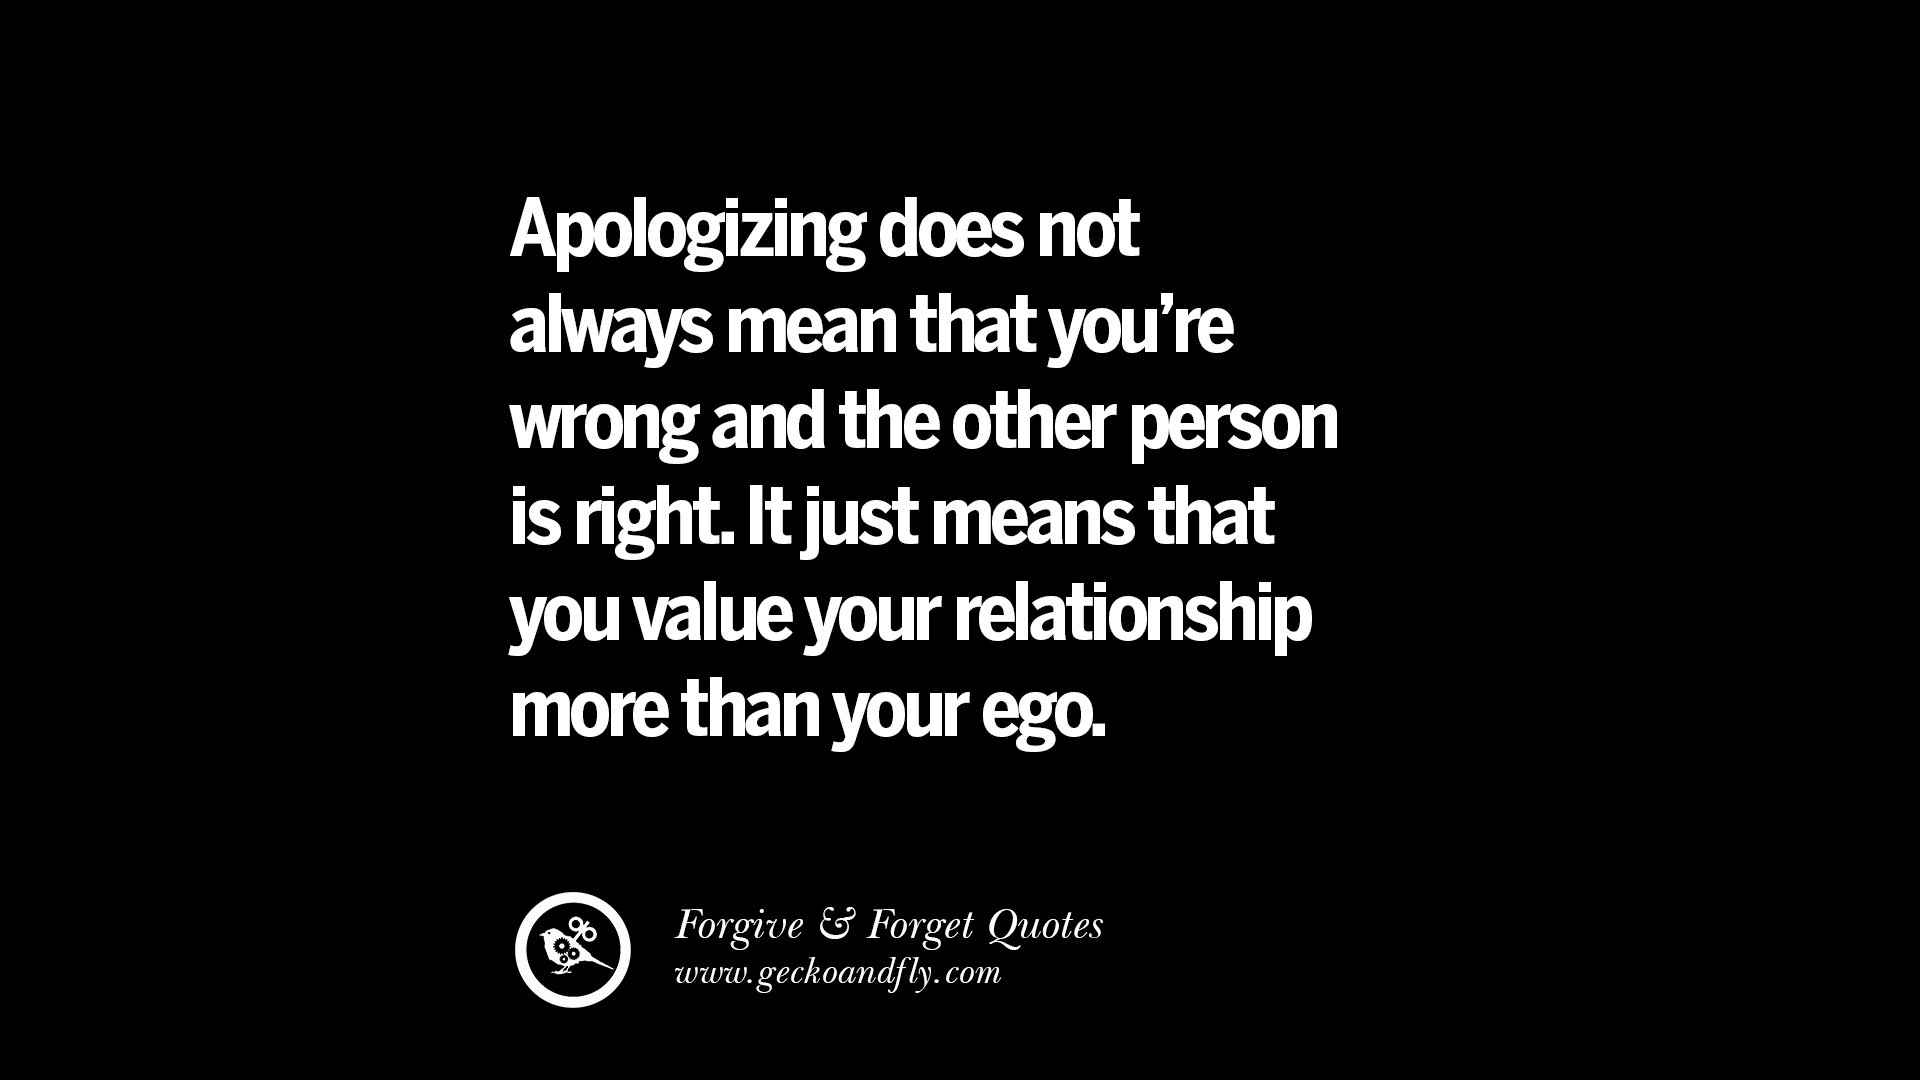 quotes on apologizing forgive and forget after an argument